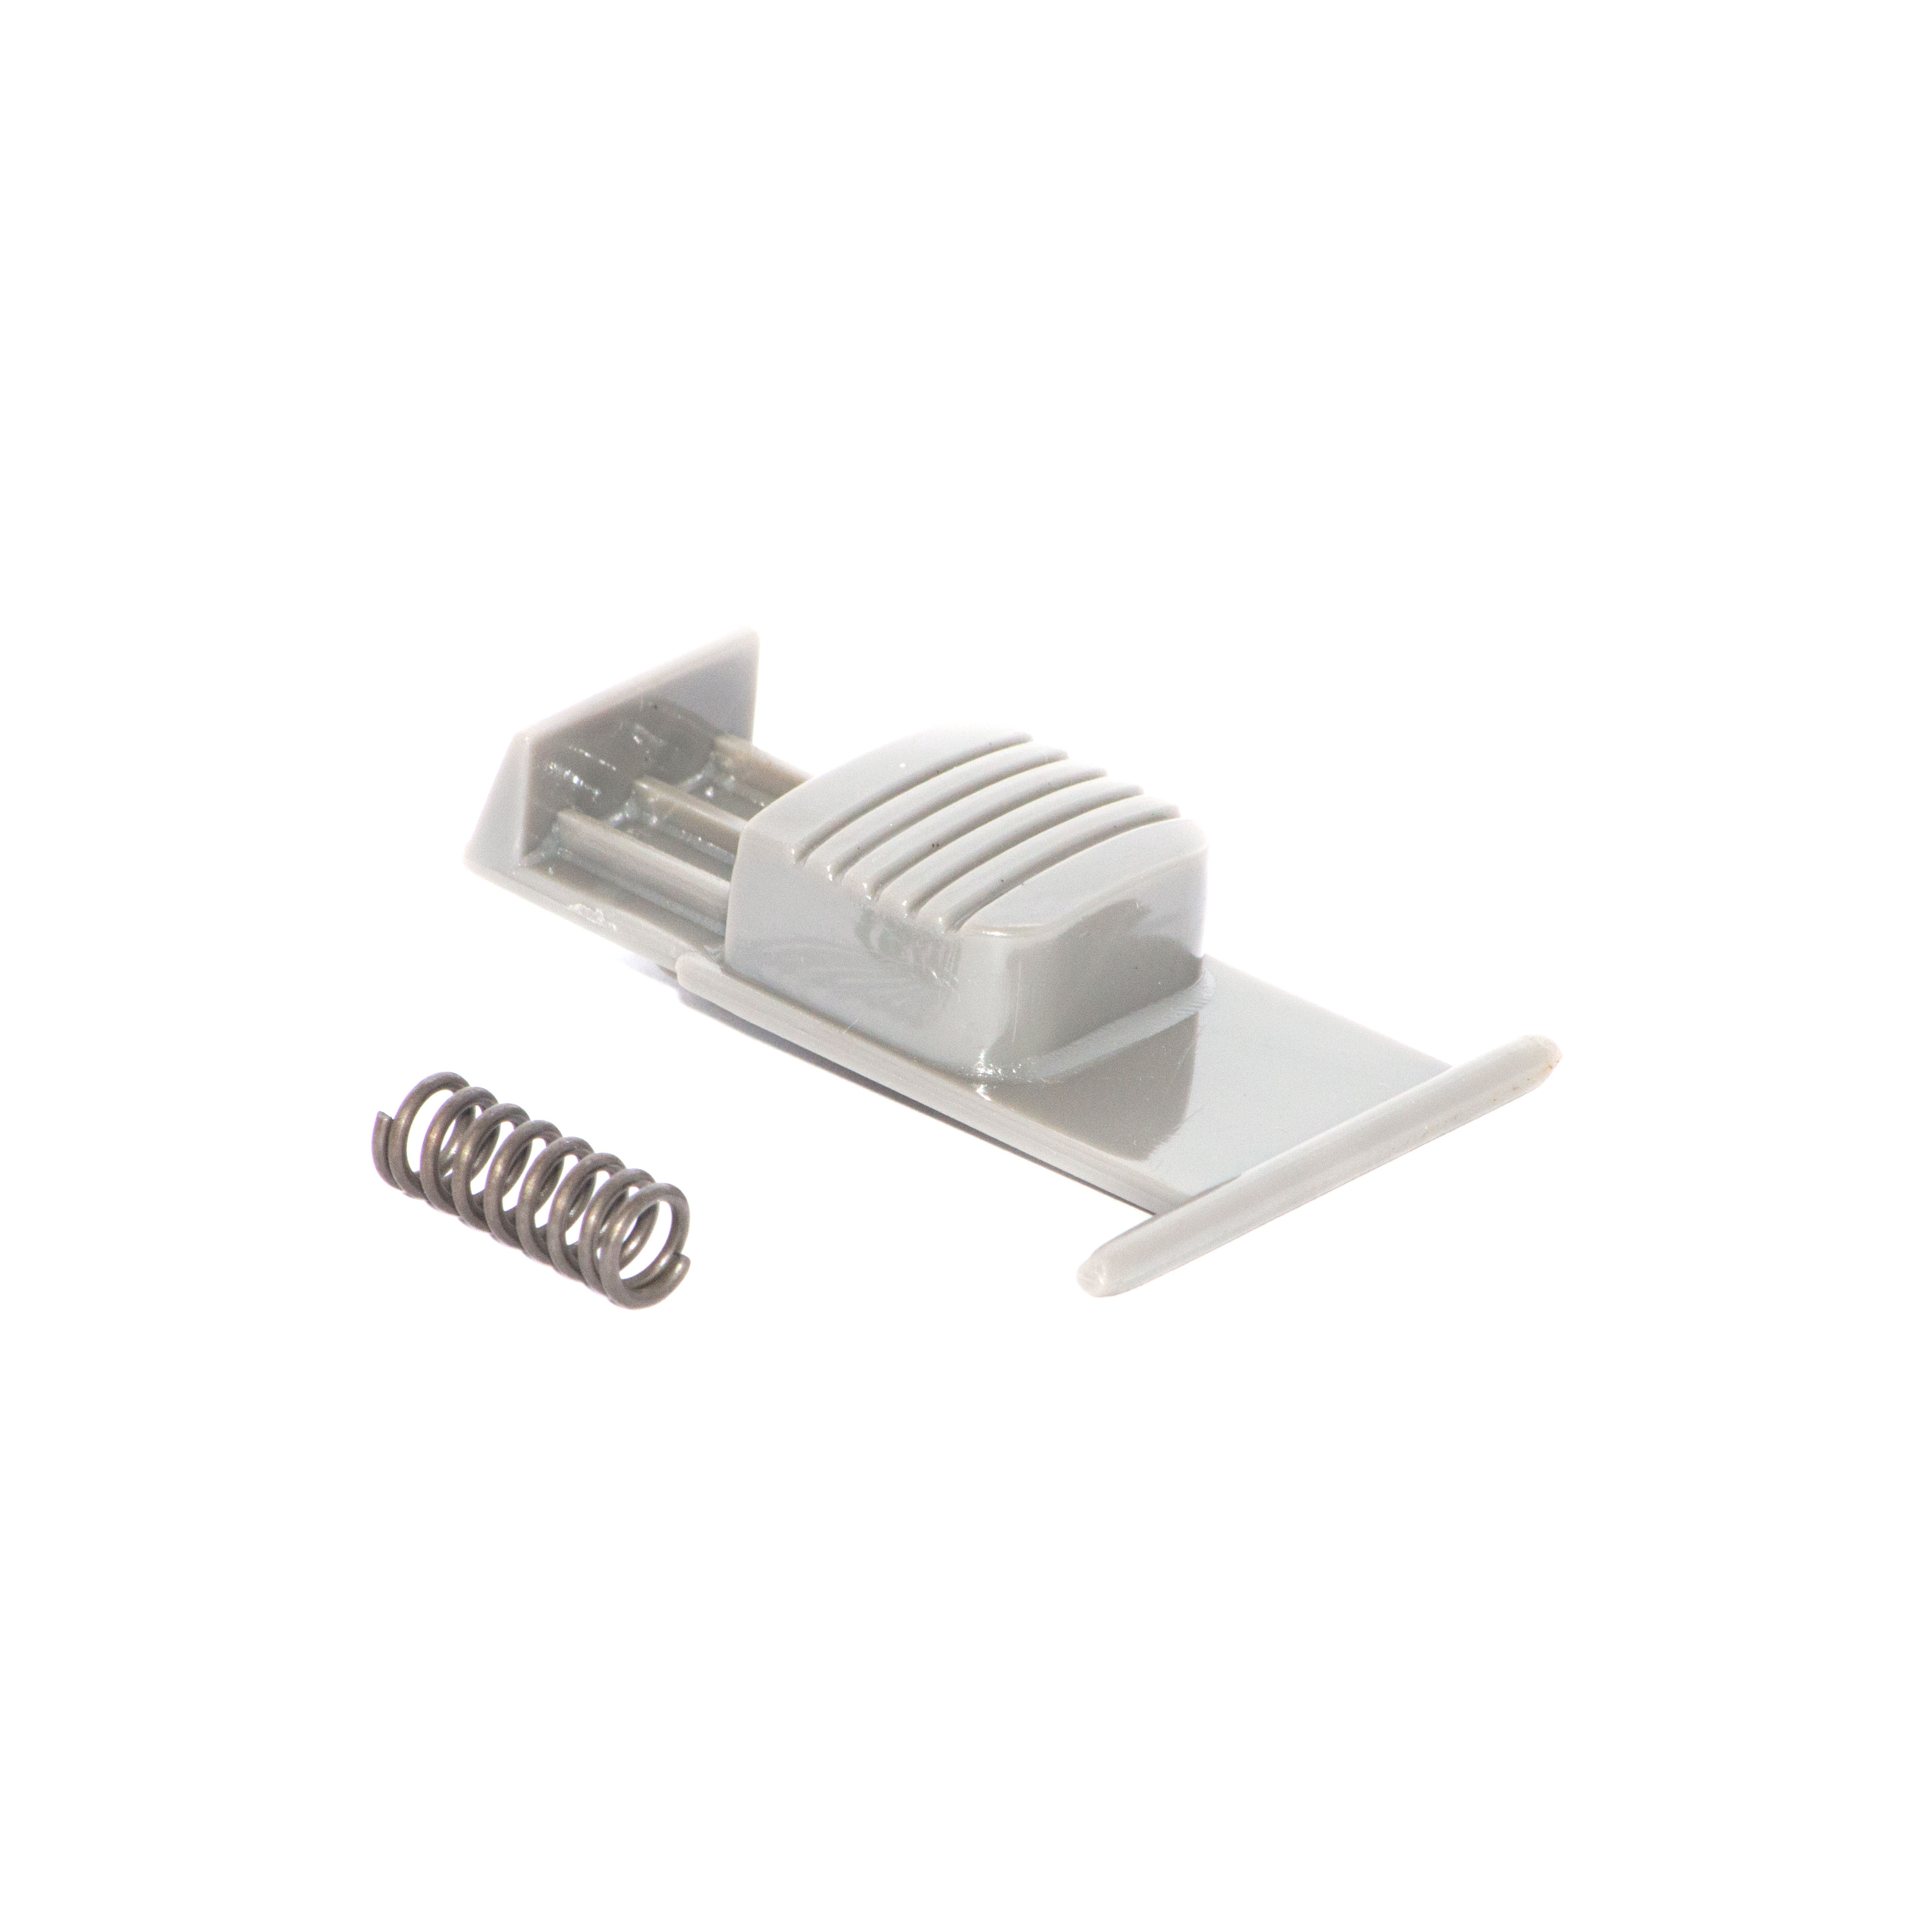 Latch And Spring For The Dust Compartmant On Model 701B 3 In 1 Stick Vacuum